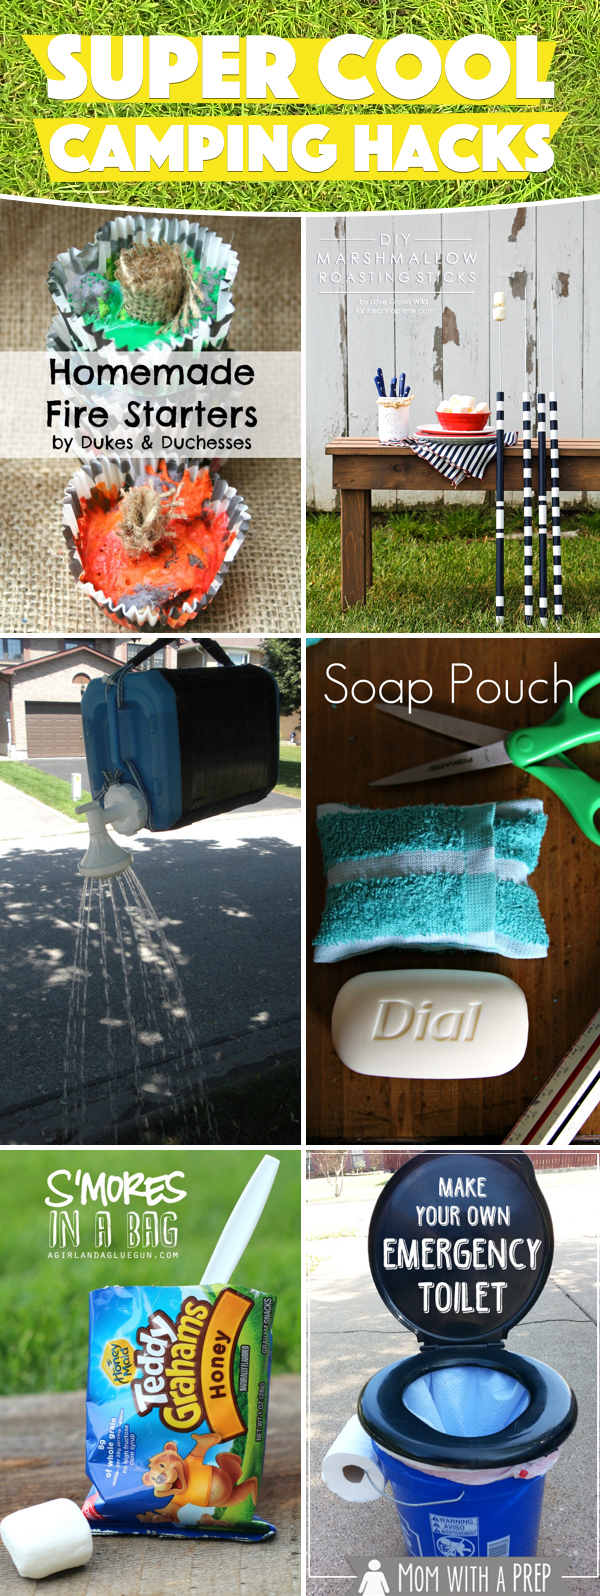 20 Super Cool Camping Hacks Making Your Trips Hassle Free And Fun